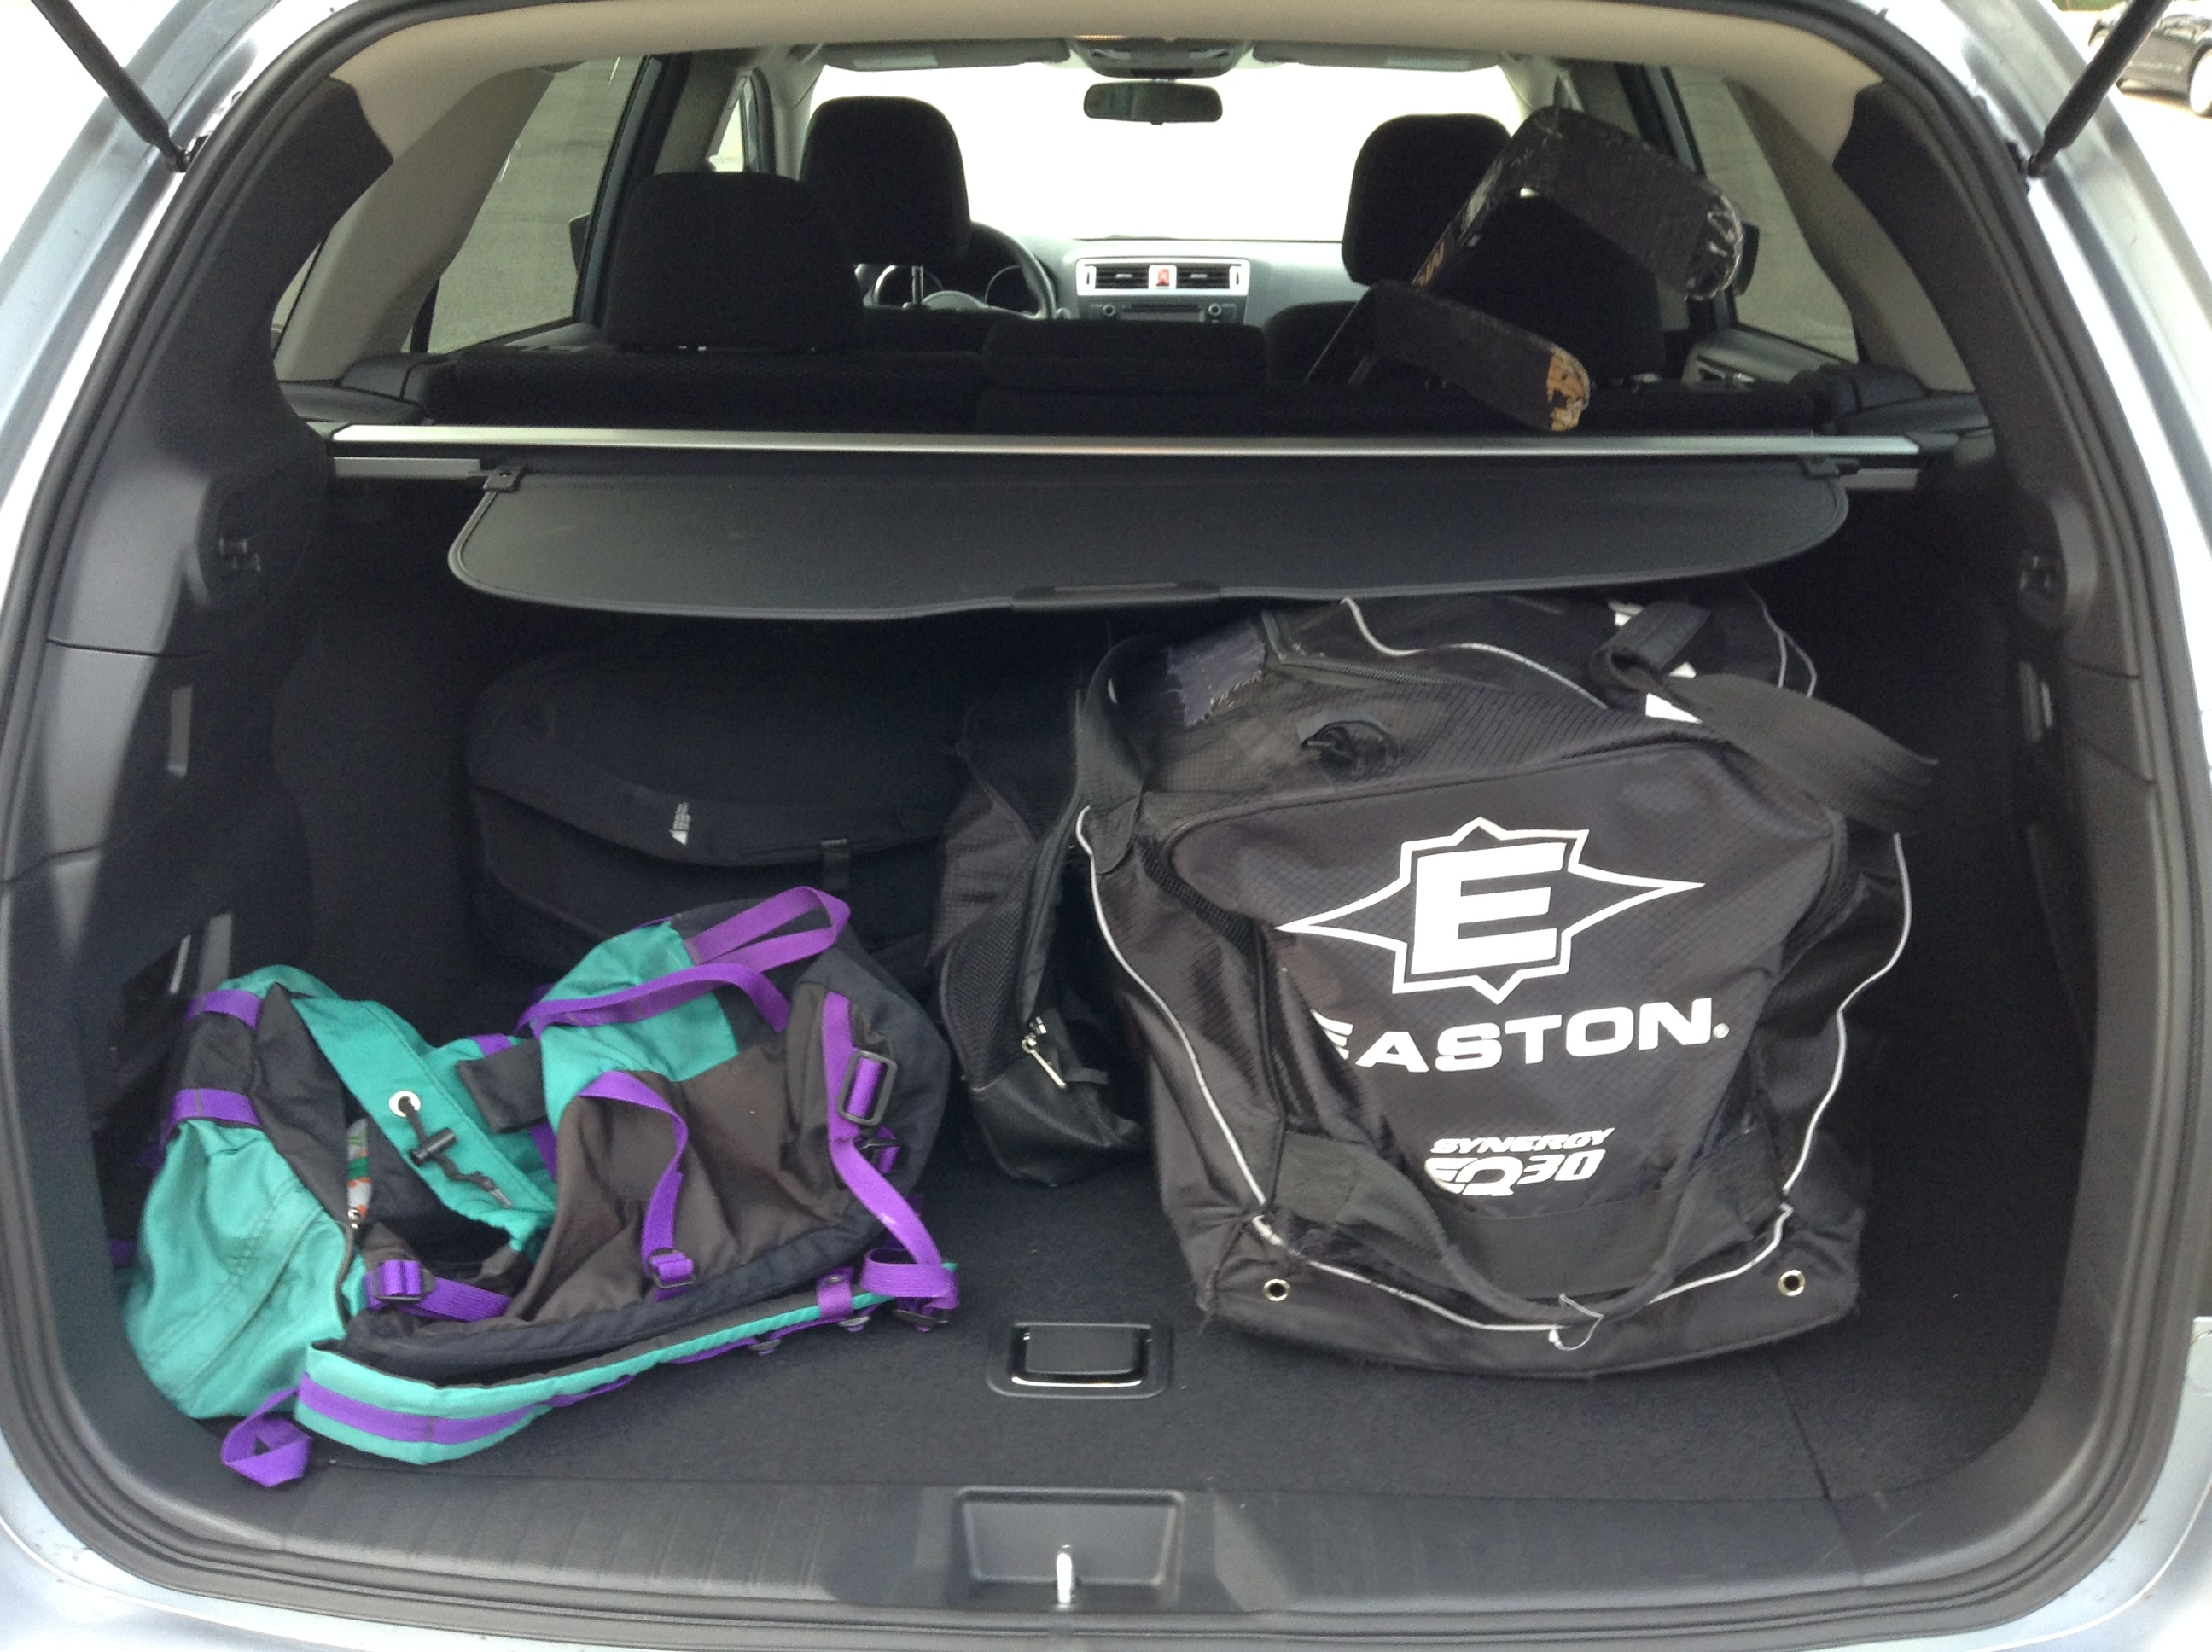 Note the ten inches of so of space between the Easton bag and the edge of the cargo area - impressive stuff.